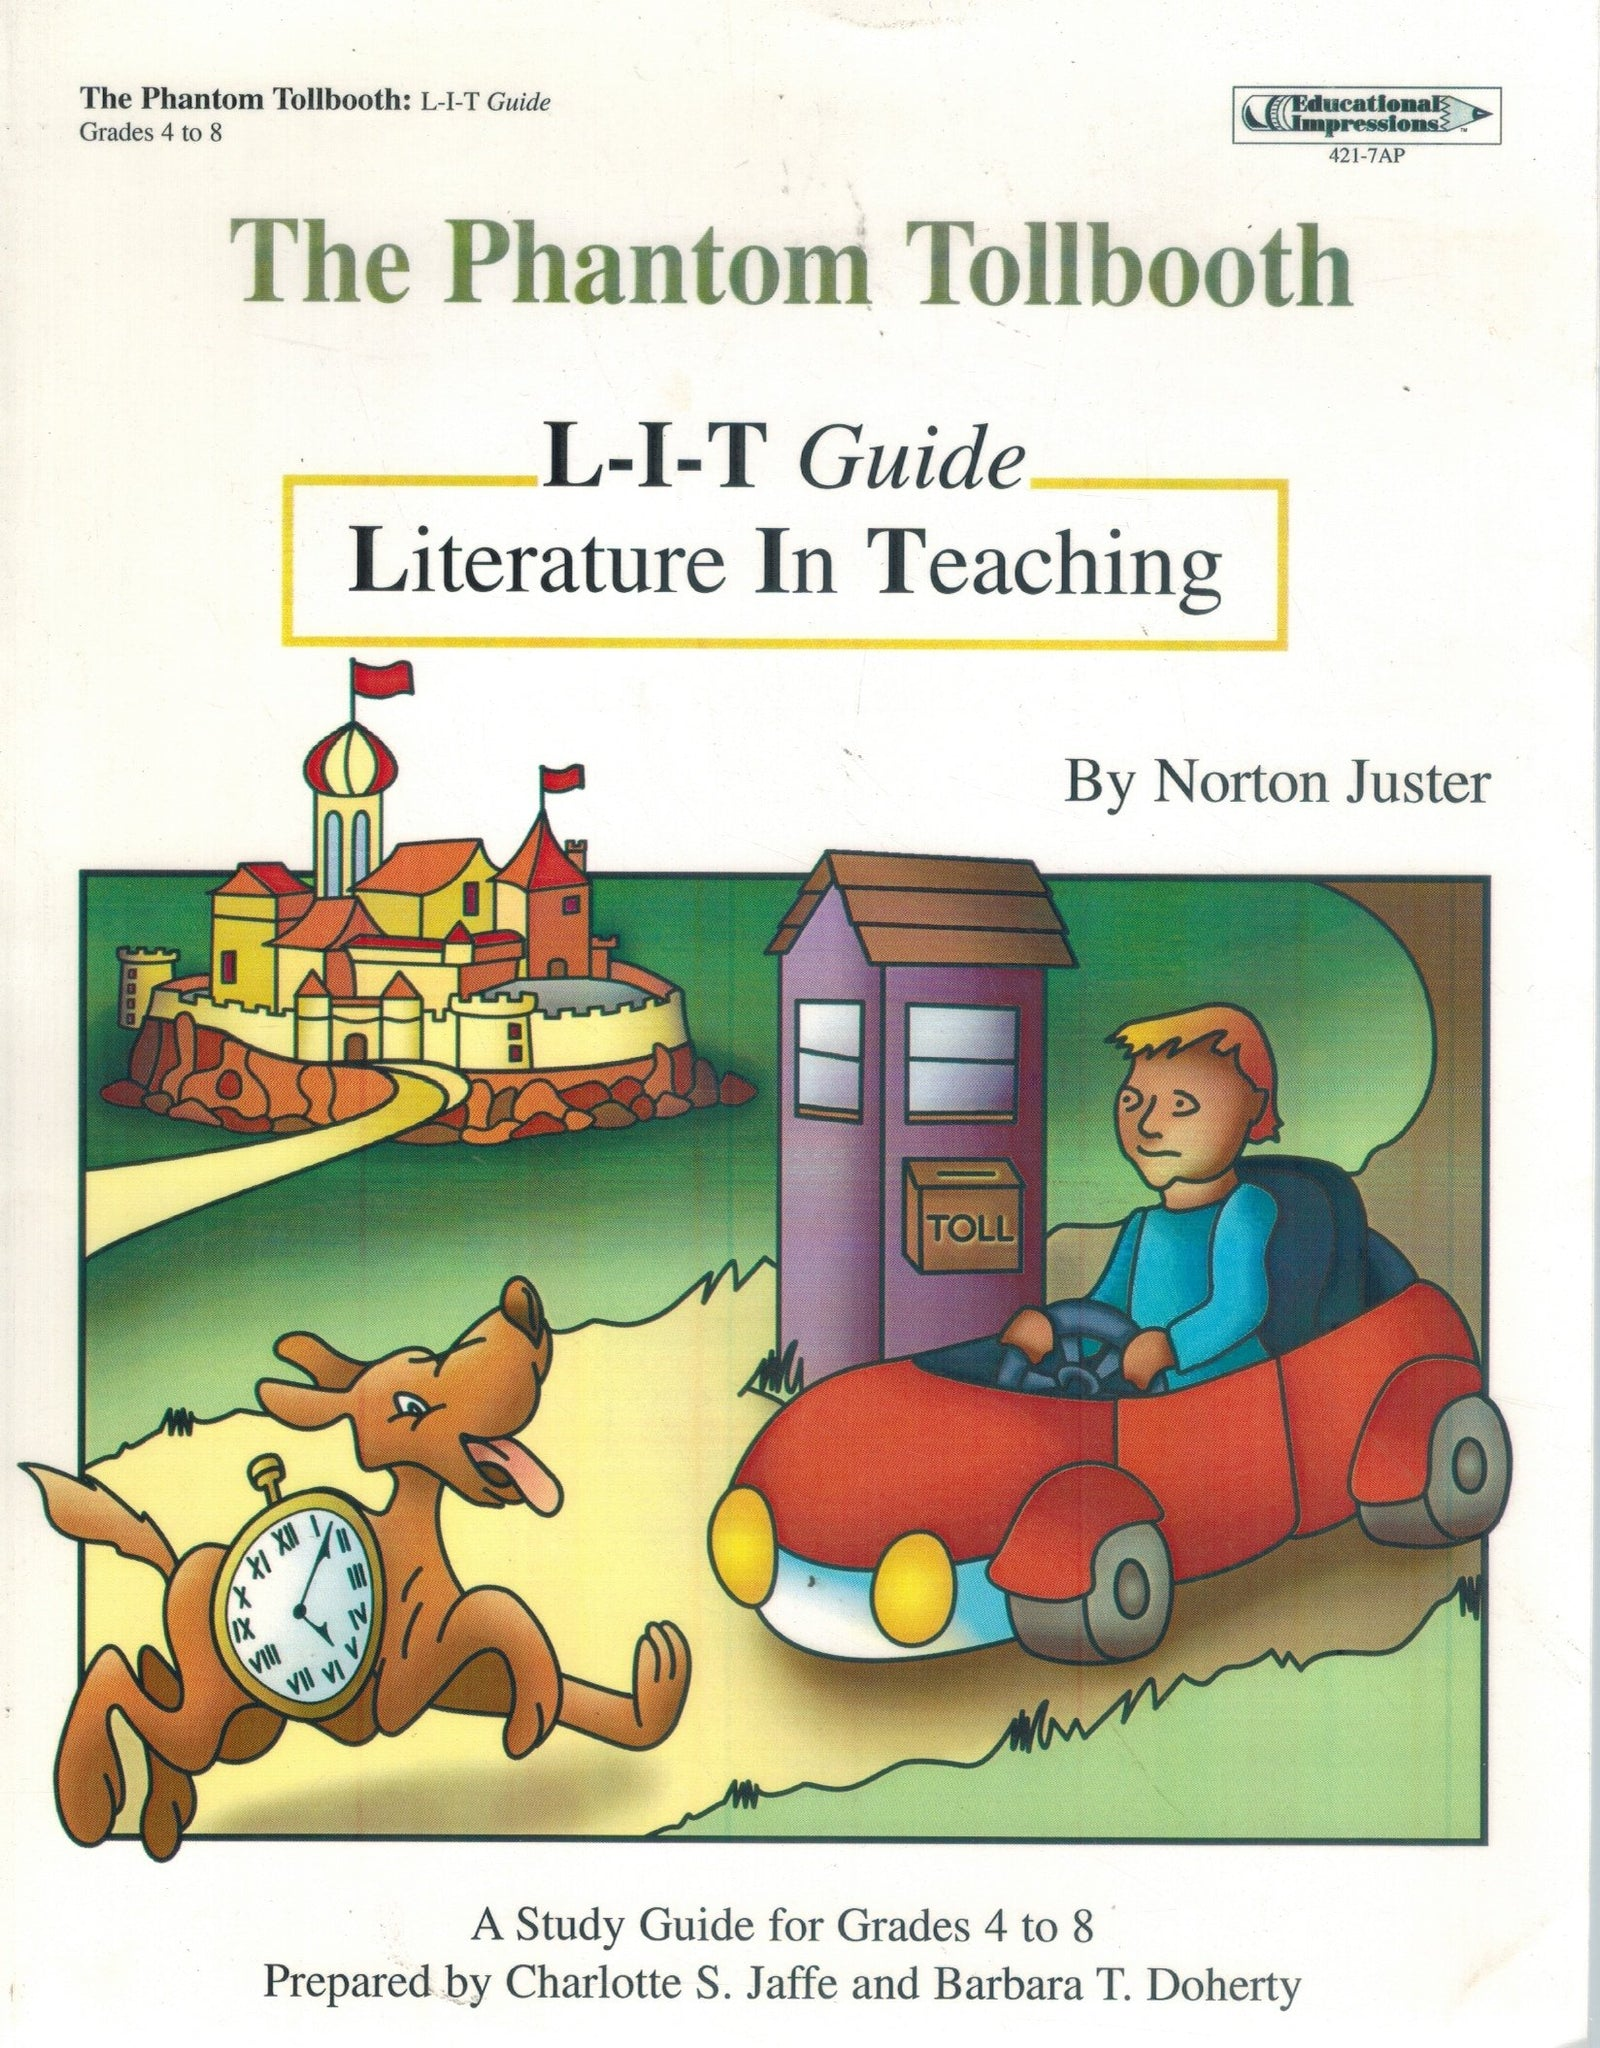 THE PHANTOM TOLLBOOTH LITERATURE IN TEACHING GUIDE, GRADES 4-8